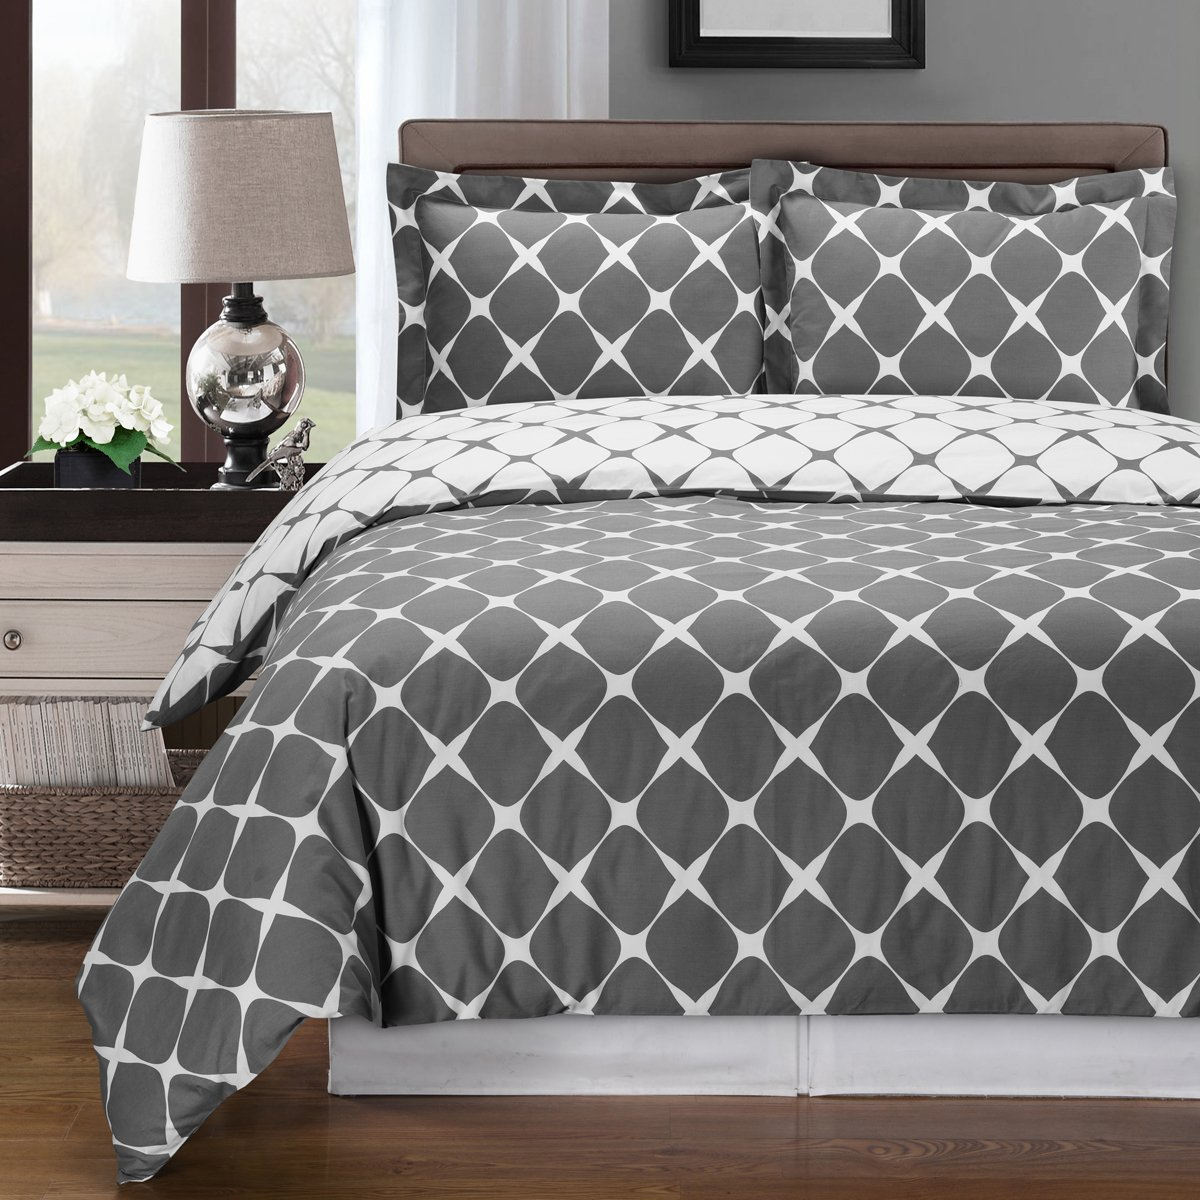 8PC Bloomingdale Grey and White King Size Bed in a Bag set Include: 3pc Duvet Cover Set + 4pc sheet Set+ 1pc Down Alternative Comforter